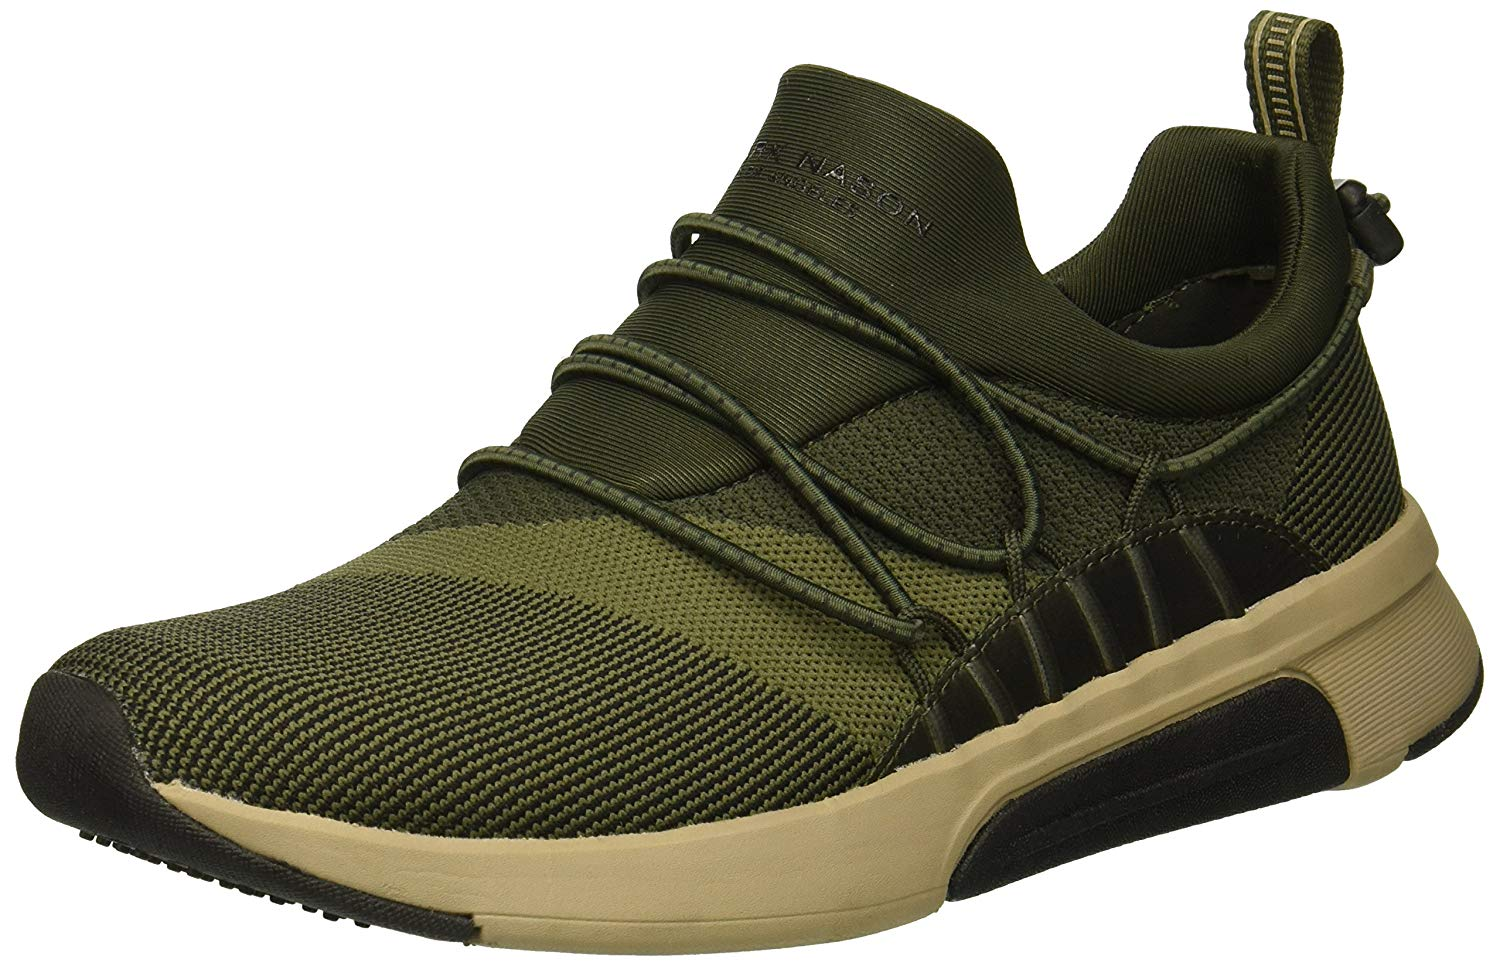 Details about Mark Nason Los Angeles Men's Willow Sneaker